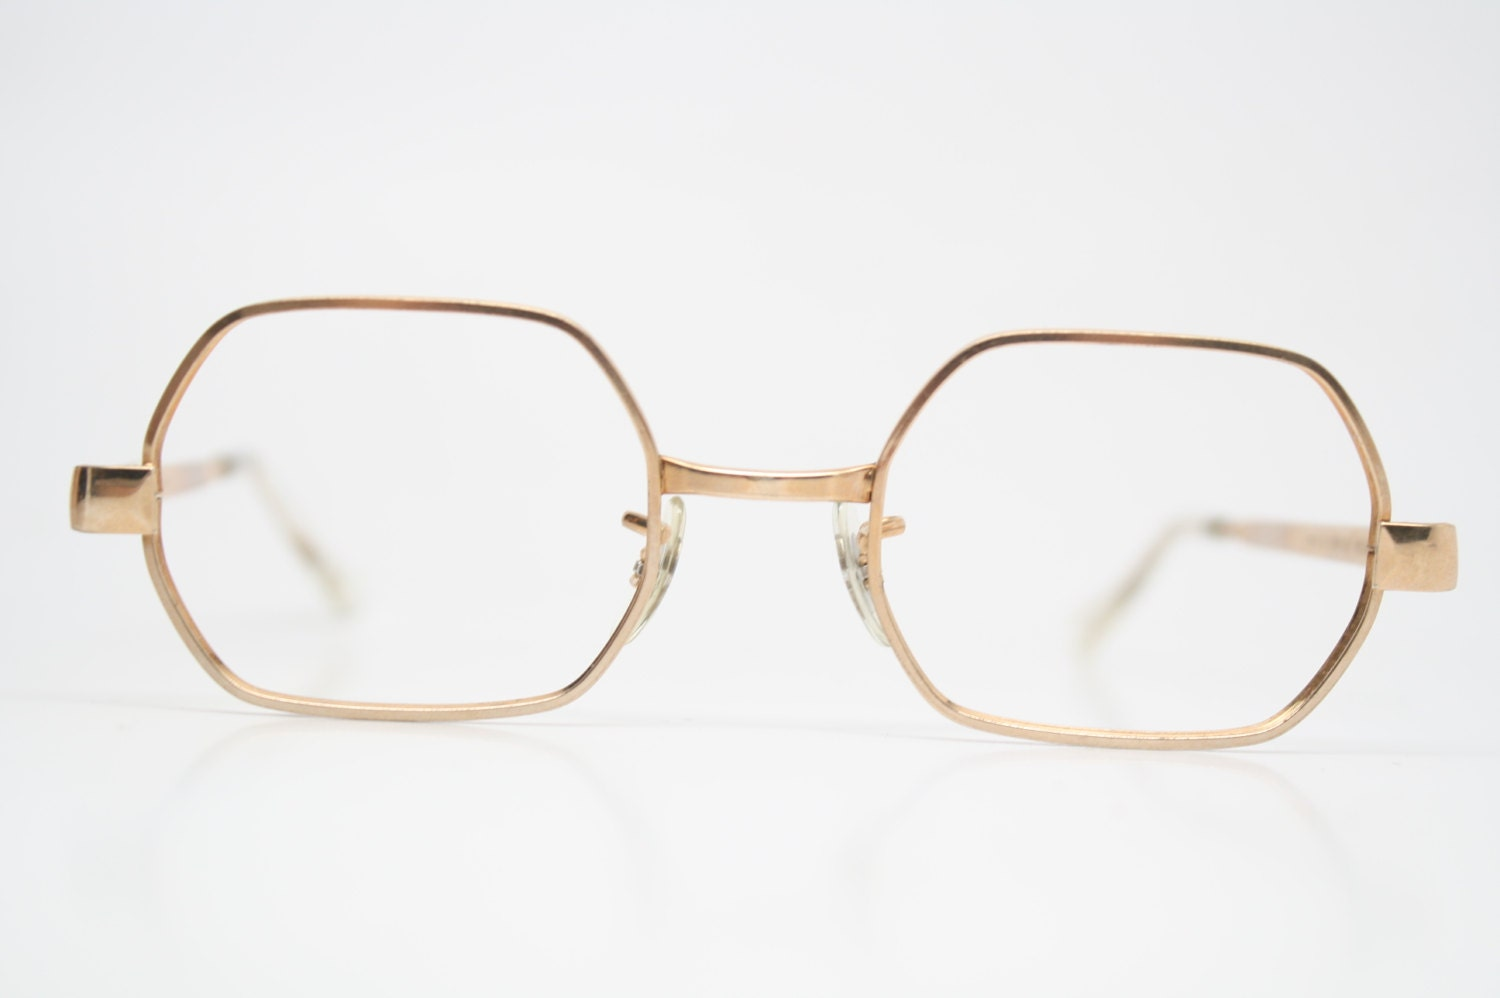 antique glasses frames square shaped 1 40 10k gold vintage